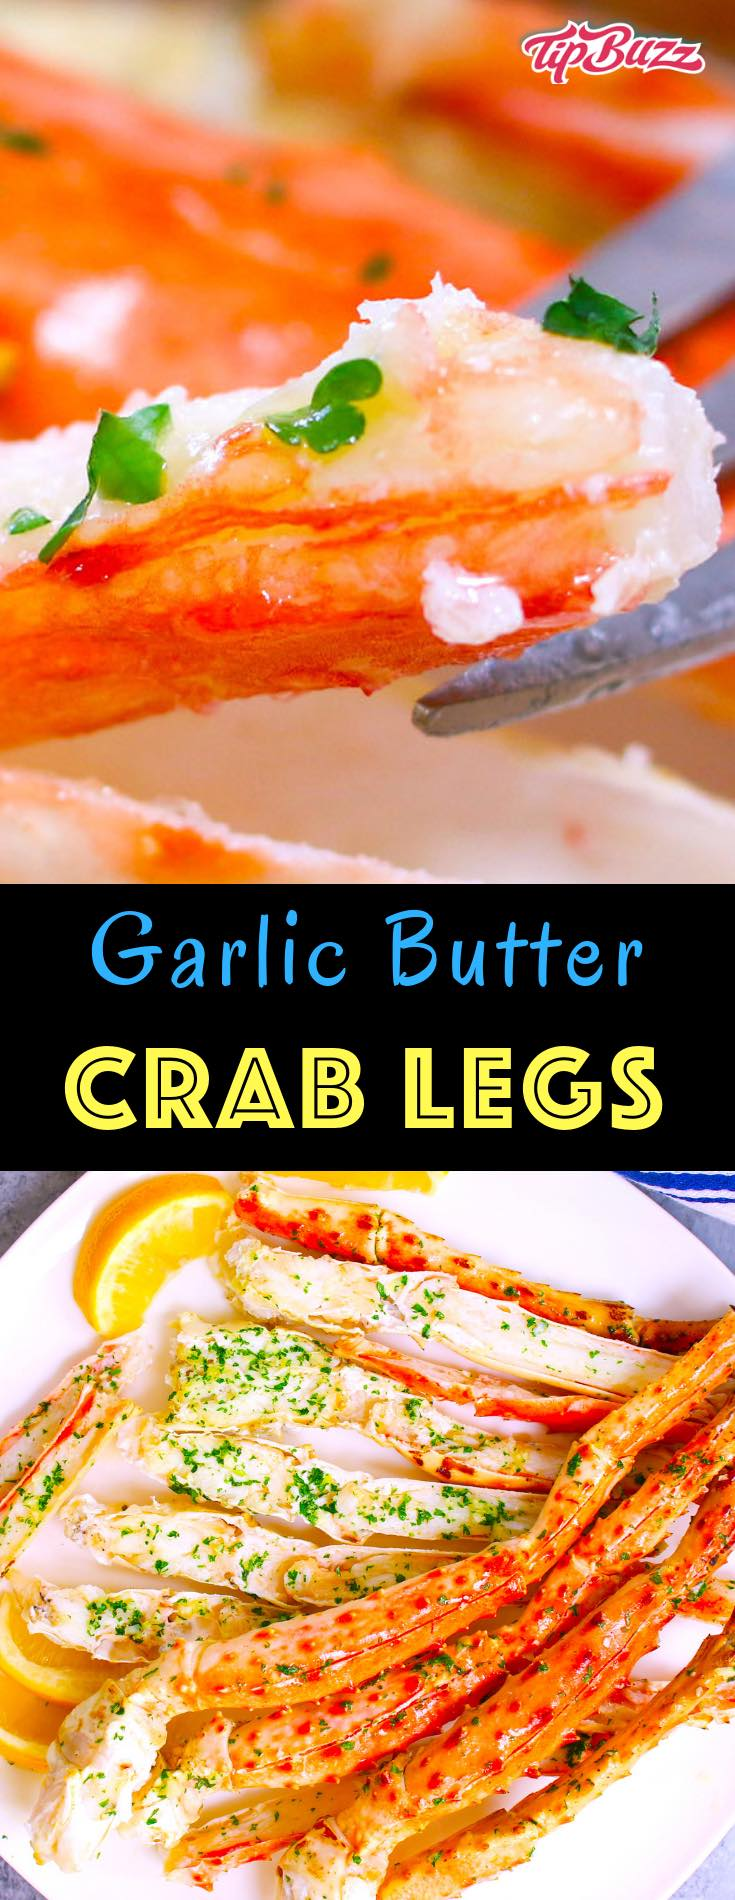 Garlic butter crab legs make a mouthwatering seafood feast that's ready in just 15 minutes. The perfect fancy meal for special occasions like birthdays, anniversaries, and more! Learn how to cook crab legs easily with confidence whether you're using snow crab legs or king crab legs!